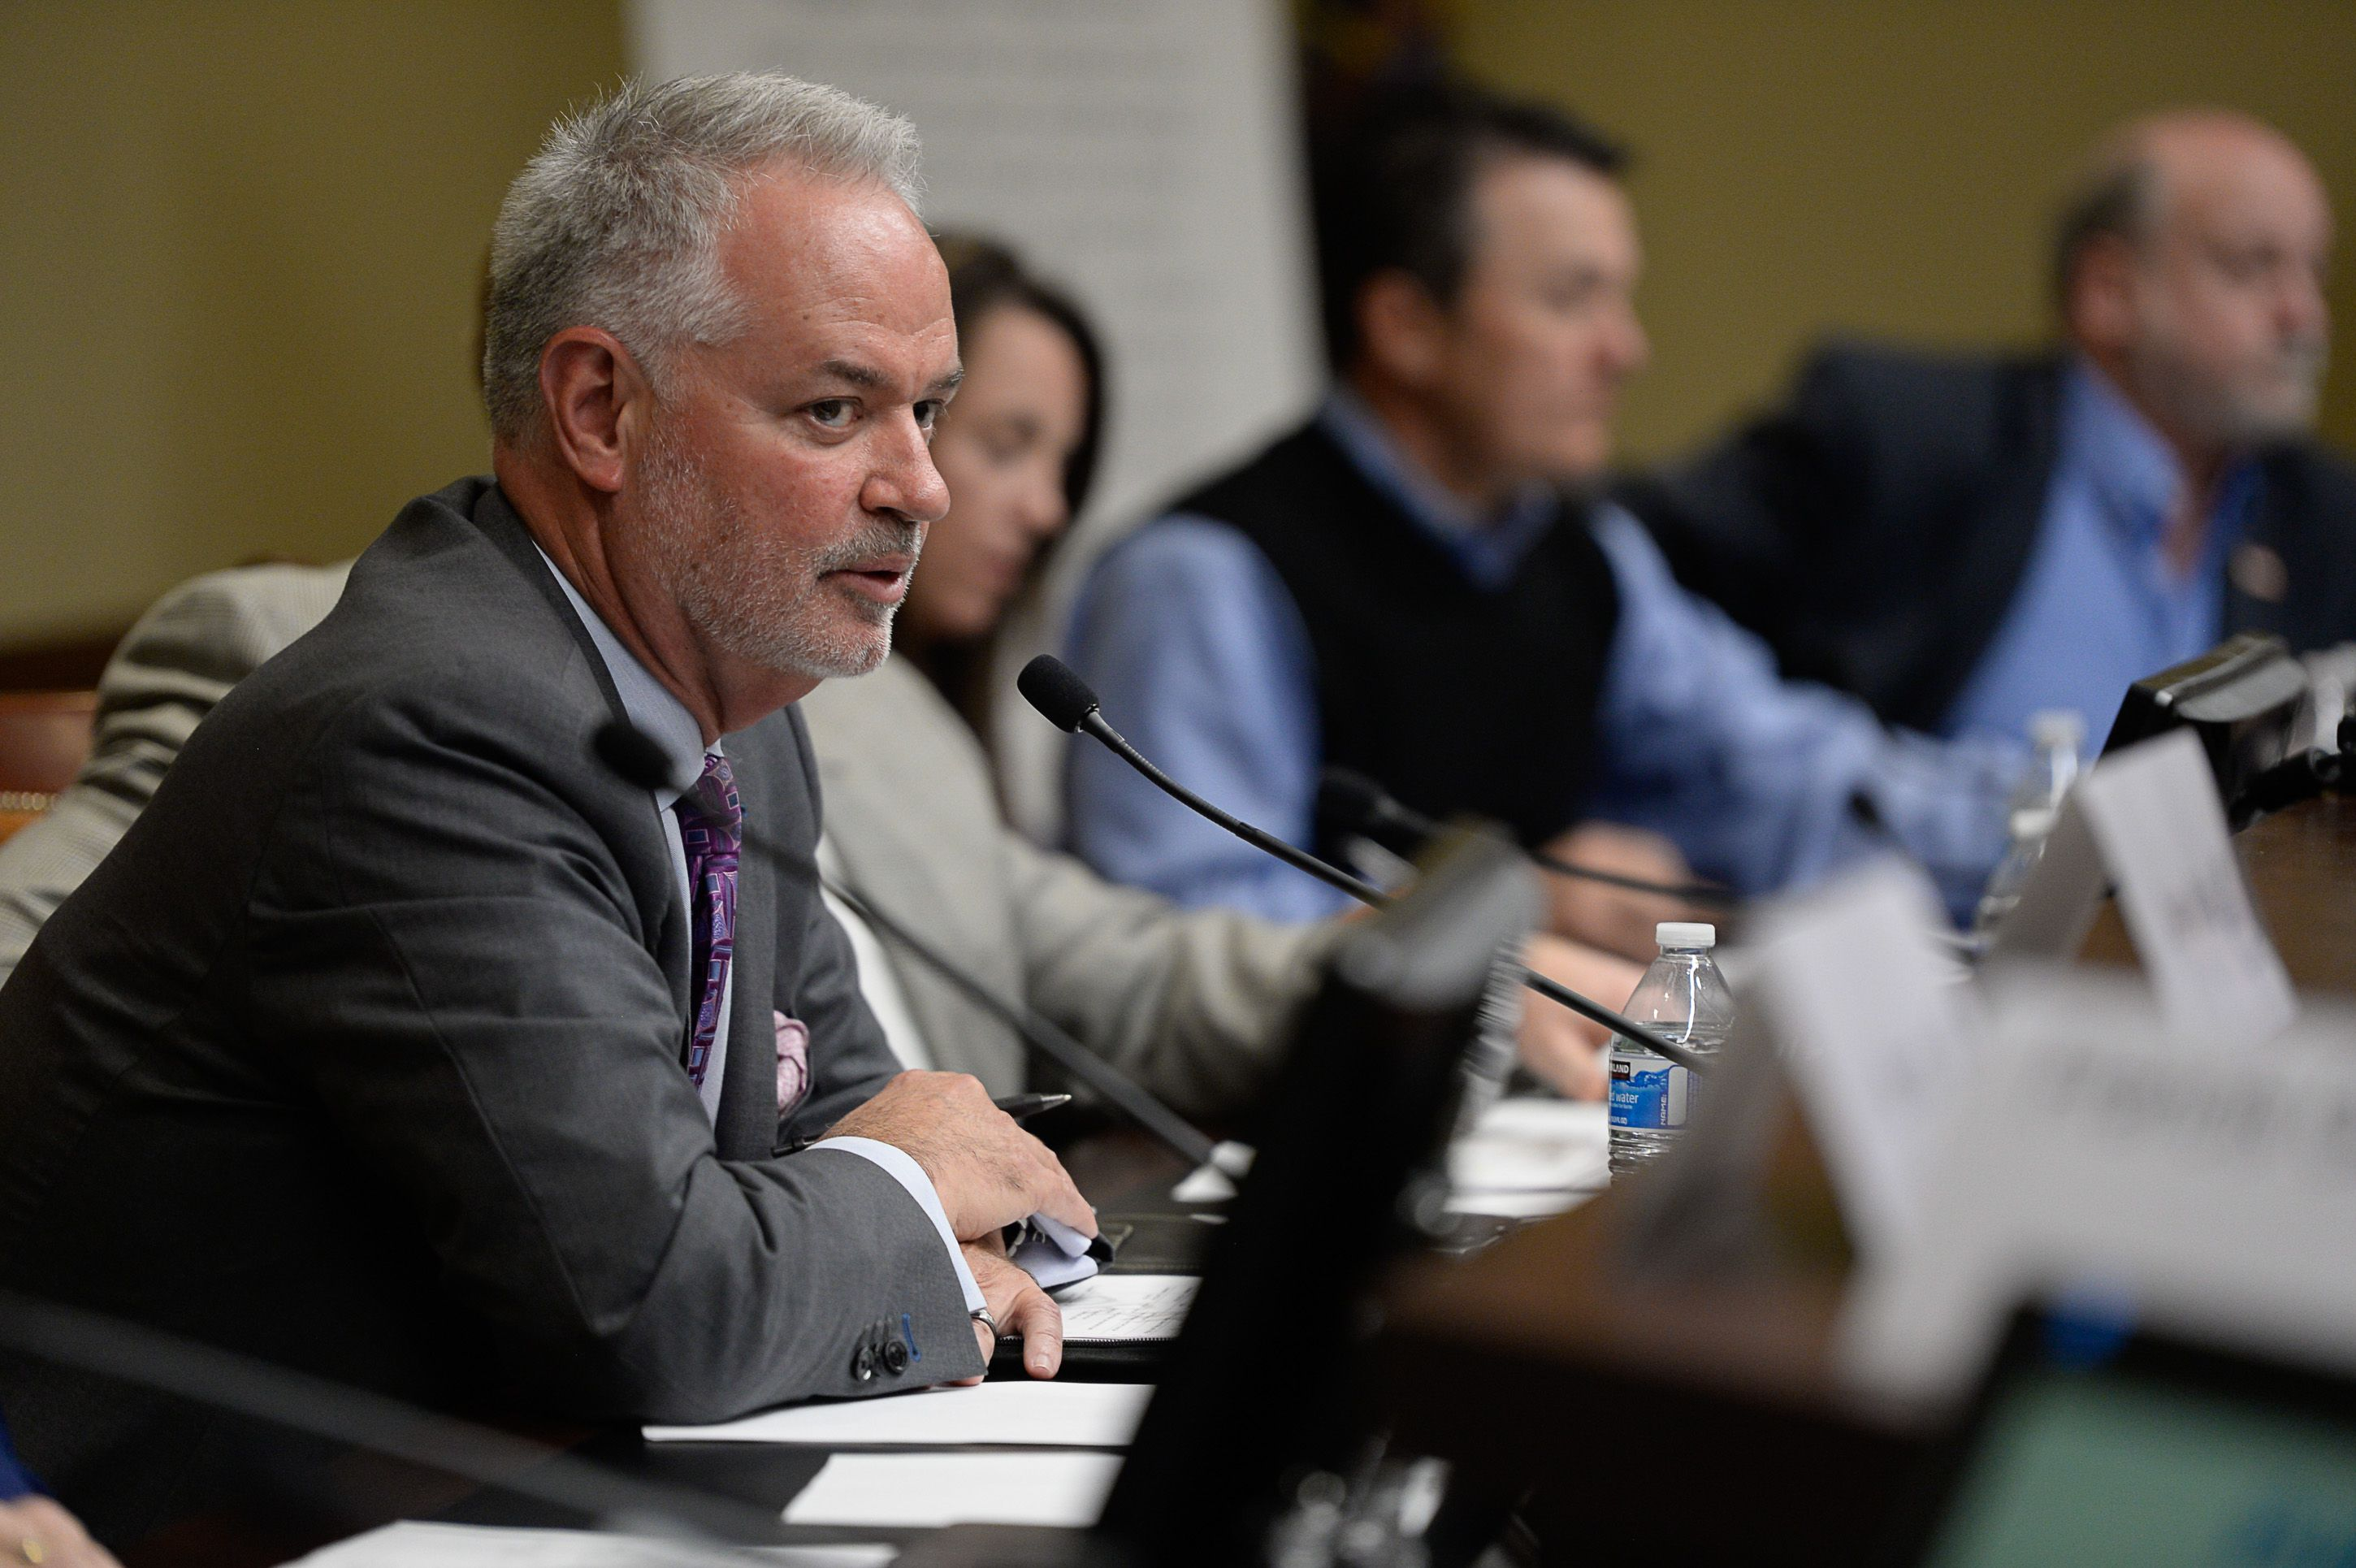 (Francisco Kjolseth  |  The Salt Lake Tribune)  Jack Hedge, Executive Director of the inland Port Authority begins a board meeting at the Utah Capitol where a few protestors disrupted the start of the meeting on Thursday, Oct. 17, 2019.